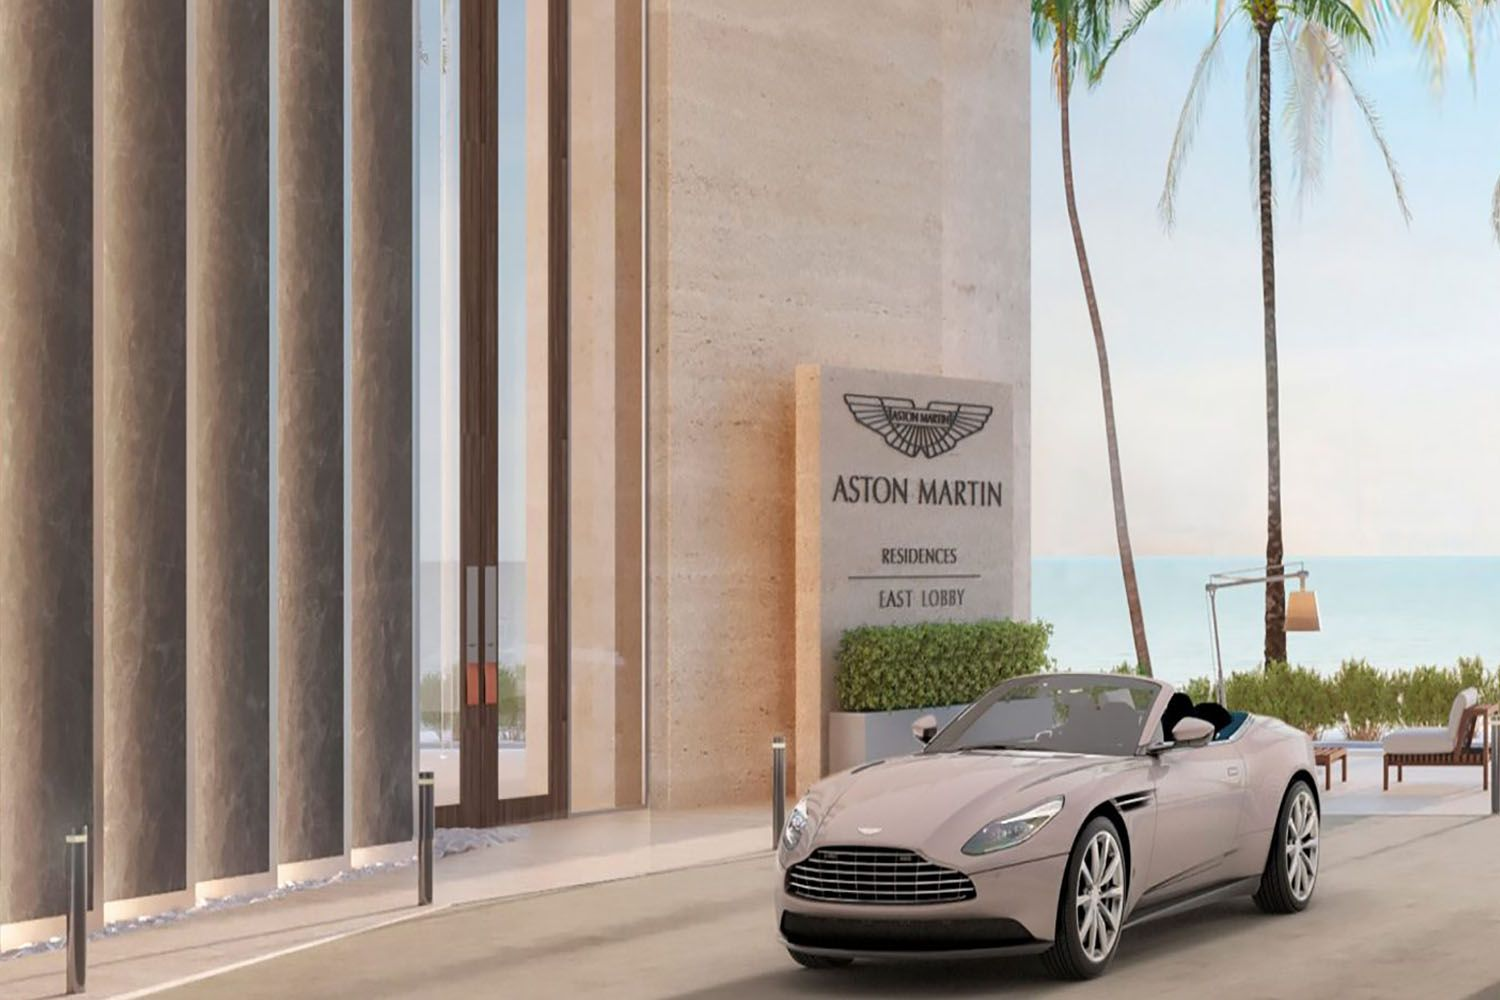 Boys and Their New Toy : Aston Martin Residence